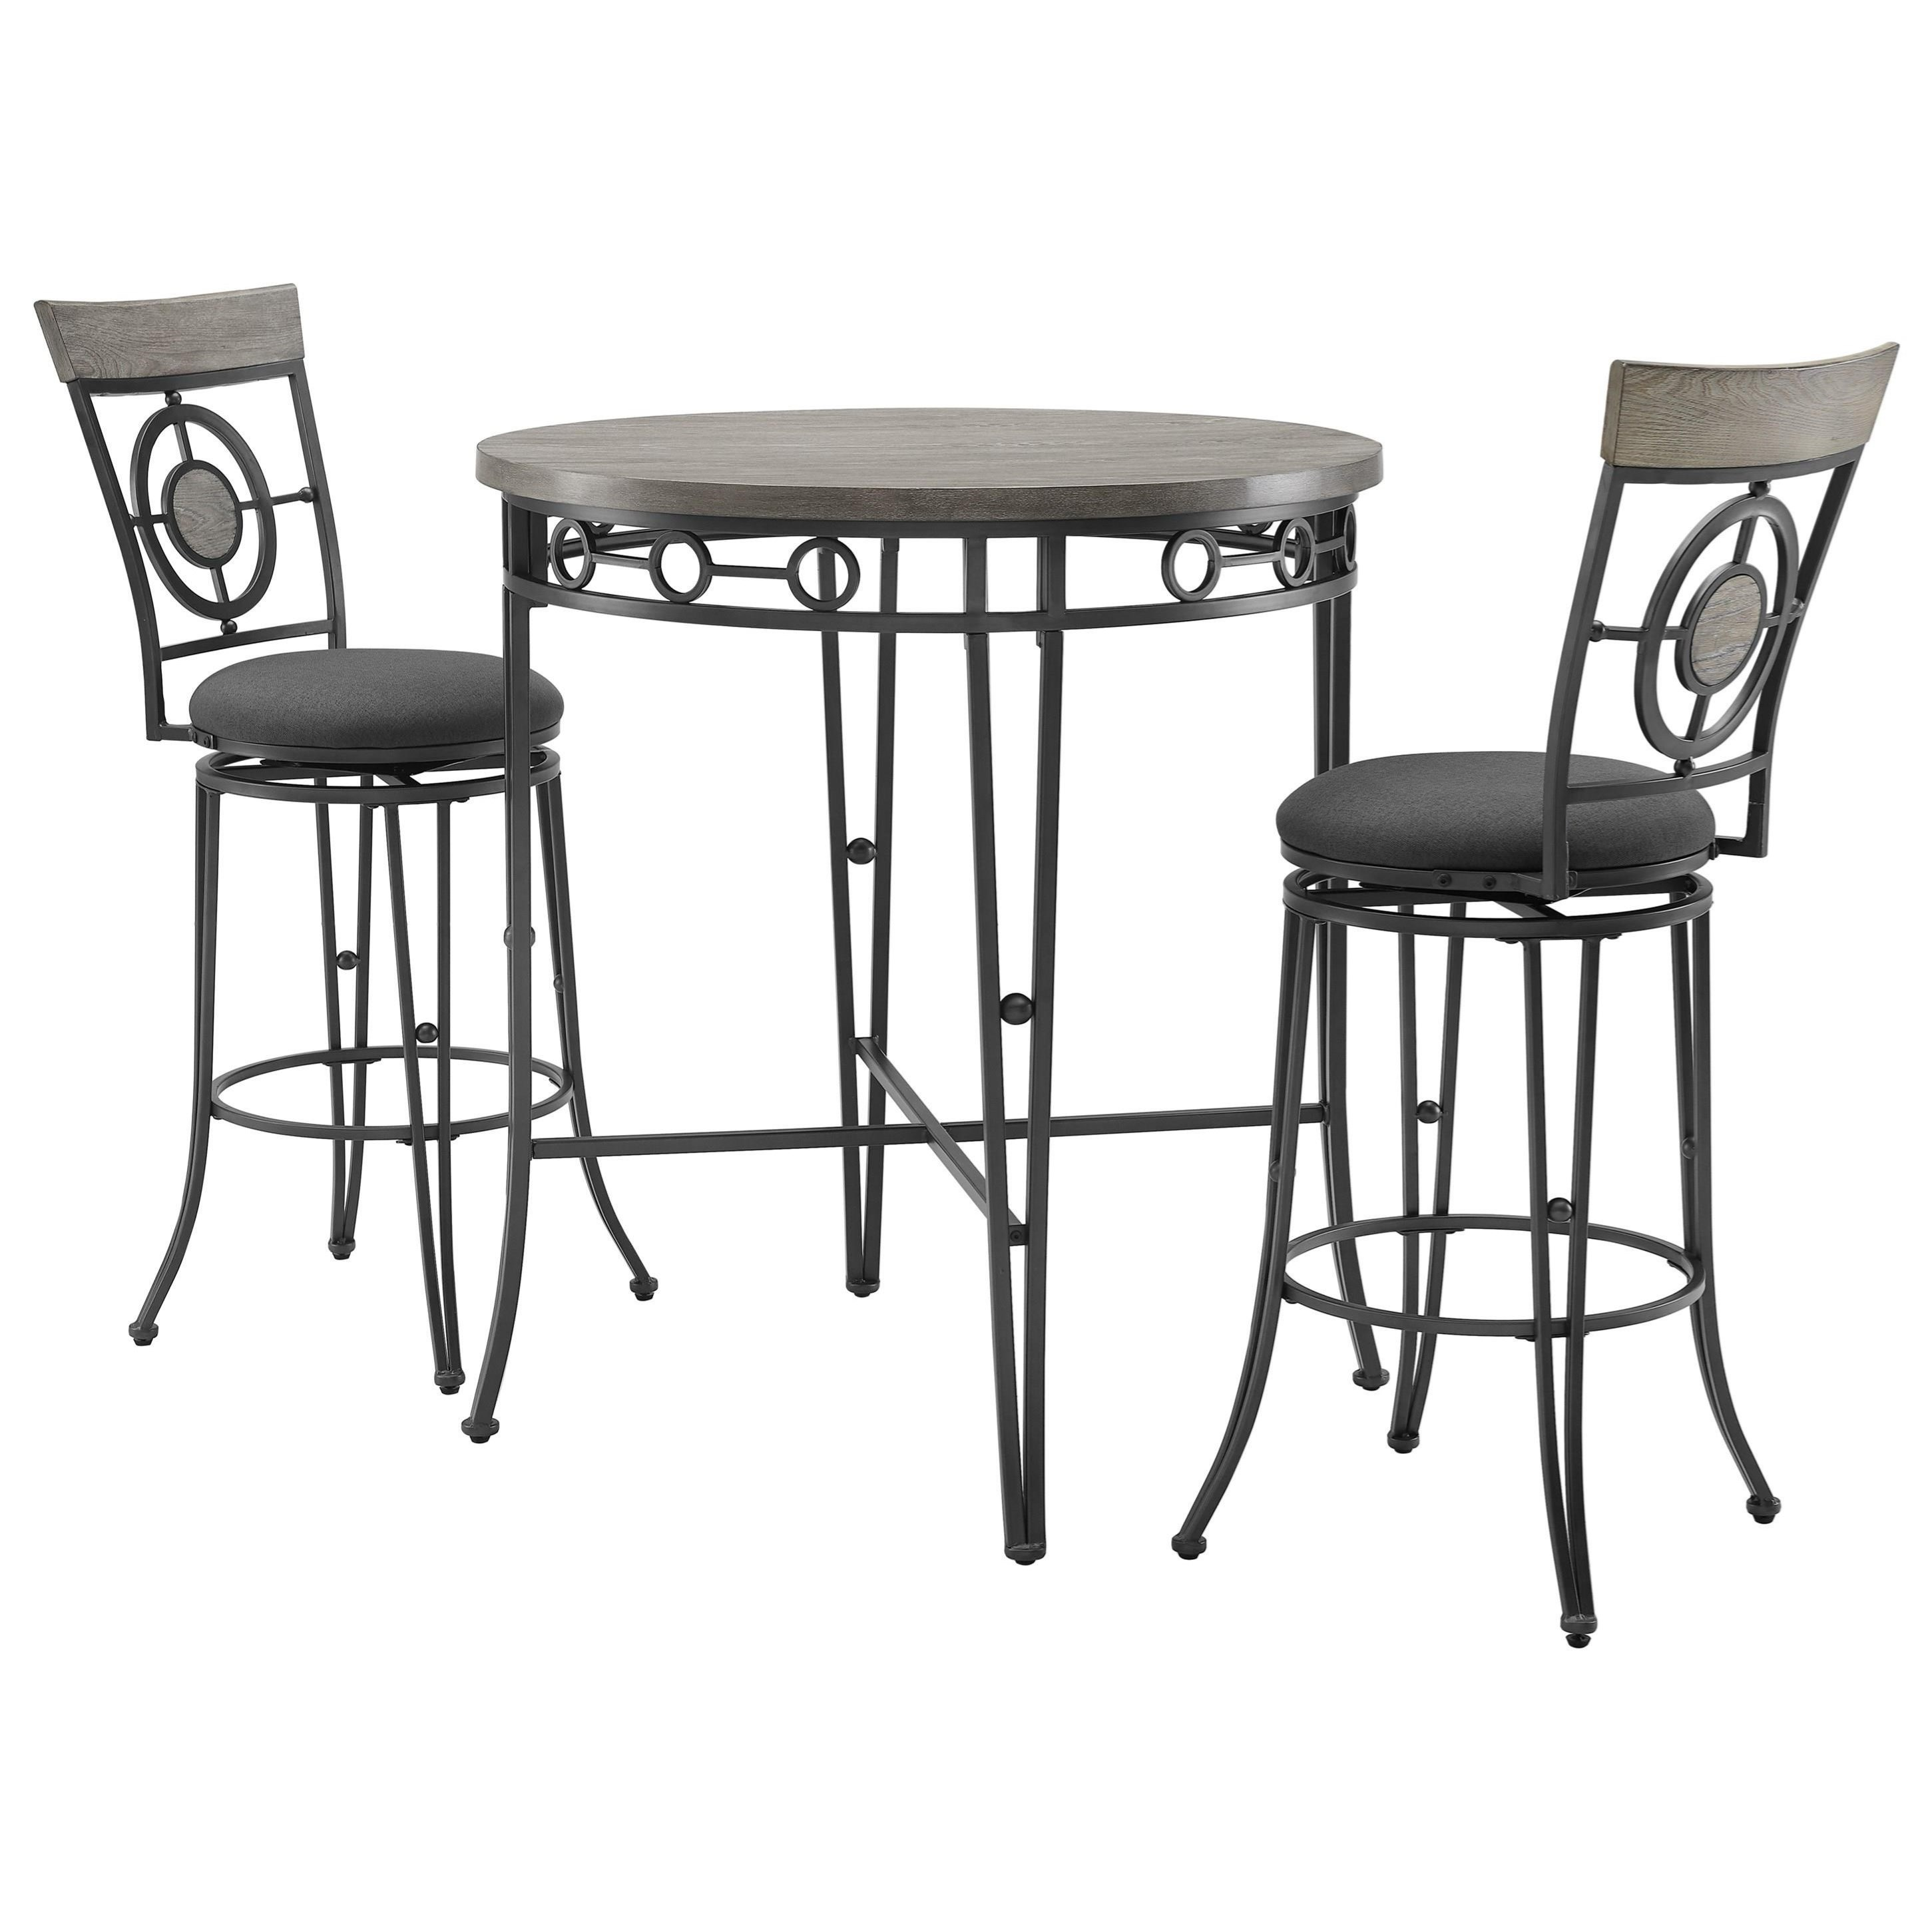 Barker 3-Piece Pub Table and Chair Set by Powell at Bullard Furniture